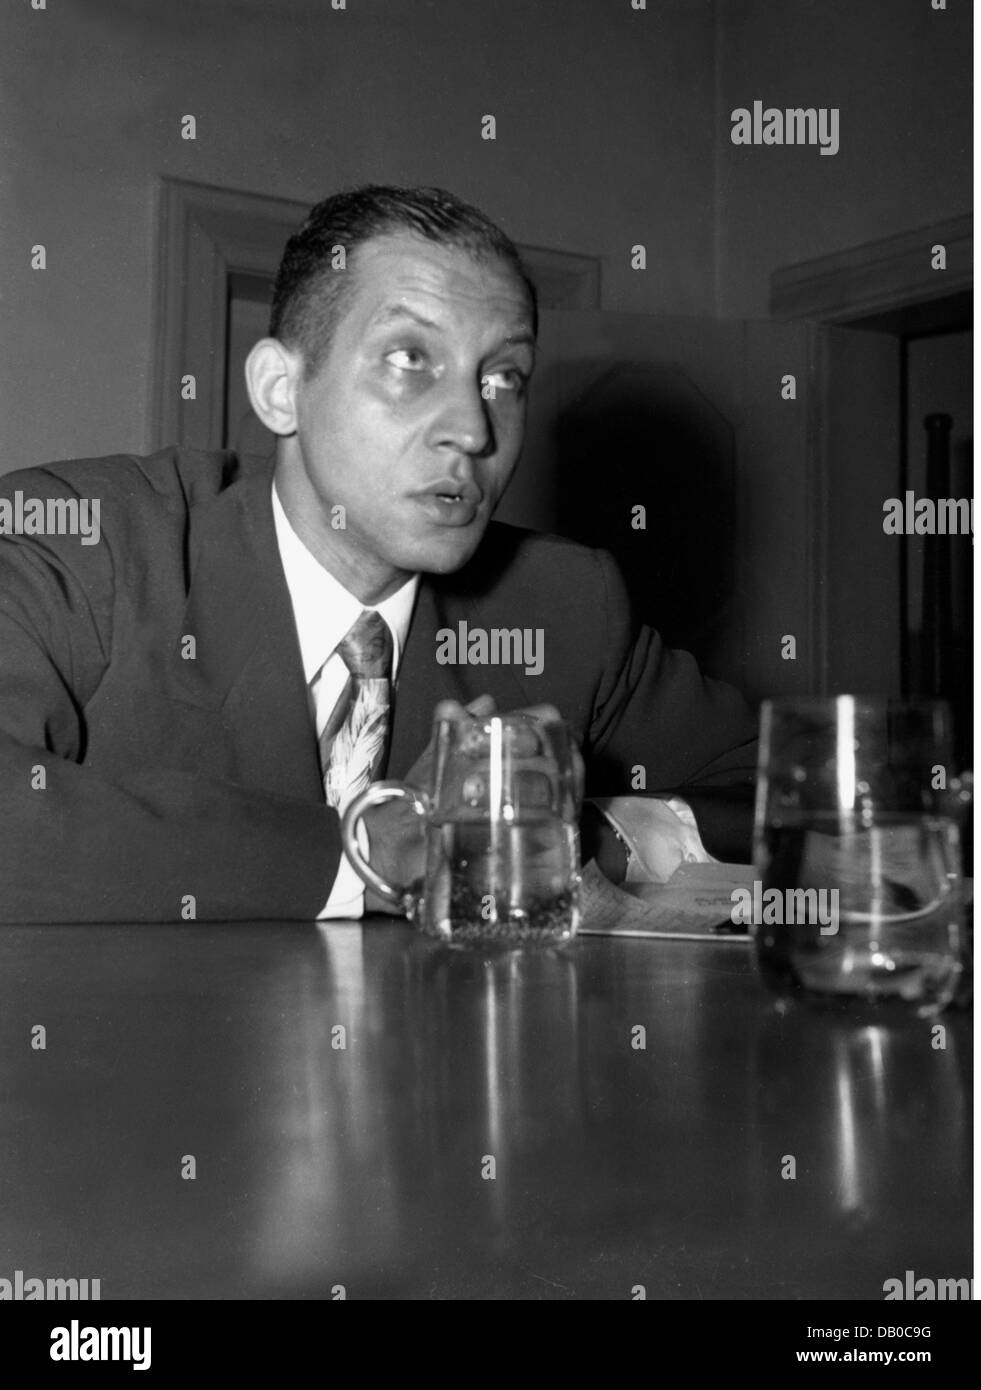 Lee, J. Oscar, American clergyman, lecture about the situation of coloured children in the USA, Nuremberg, early - Stock Image